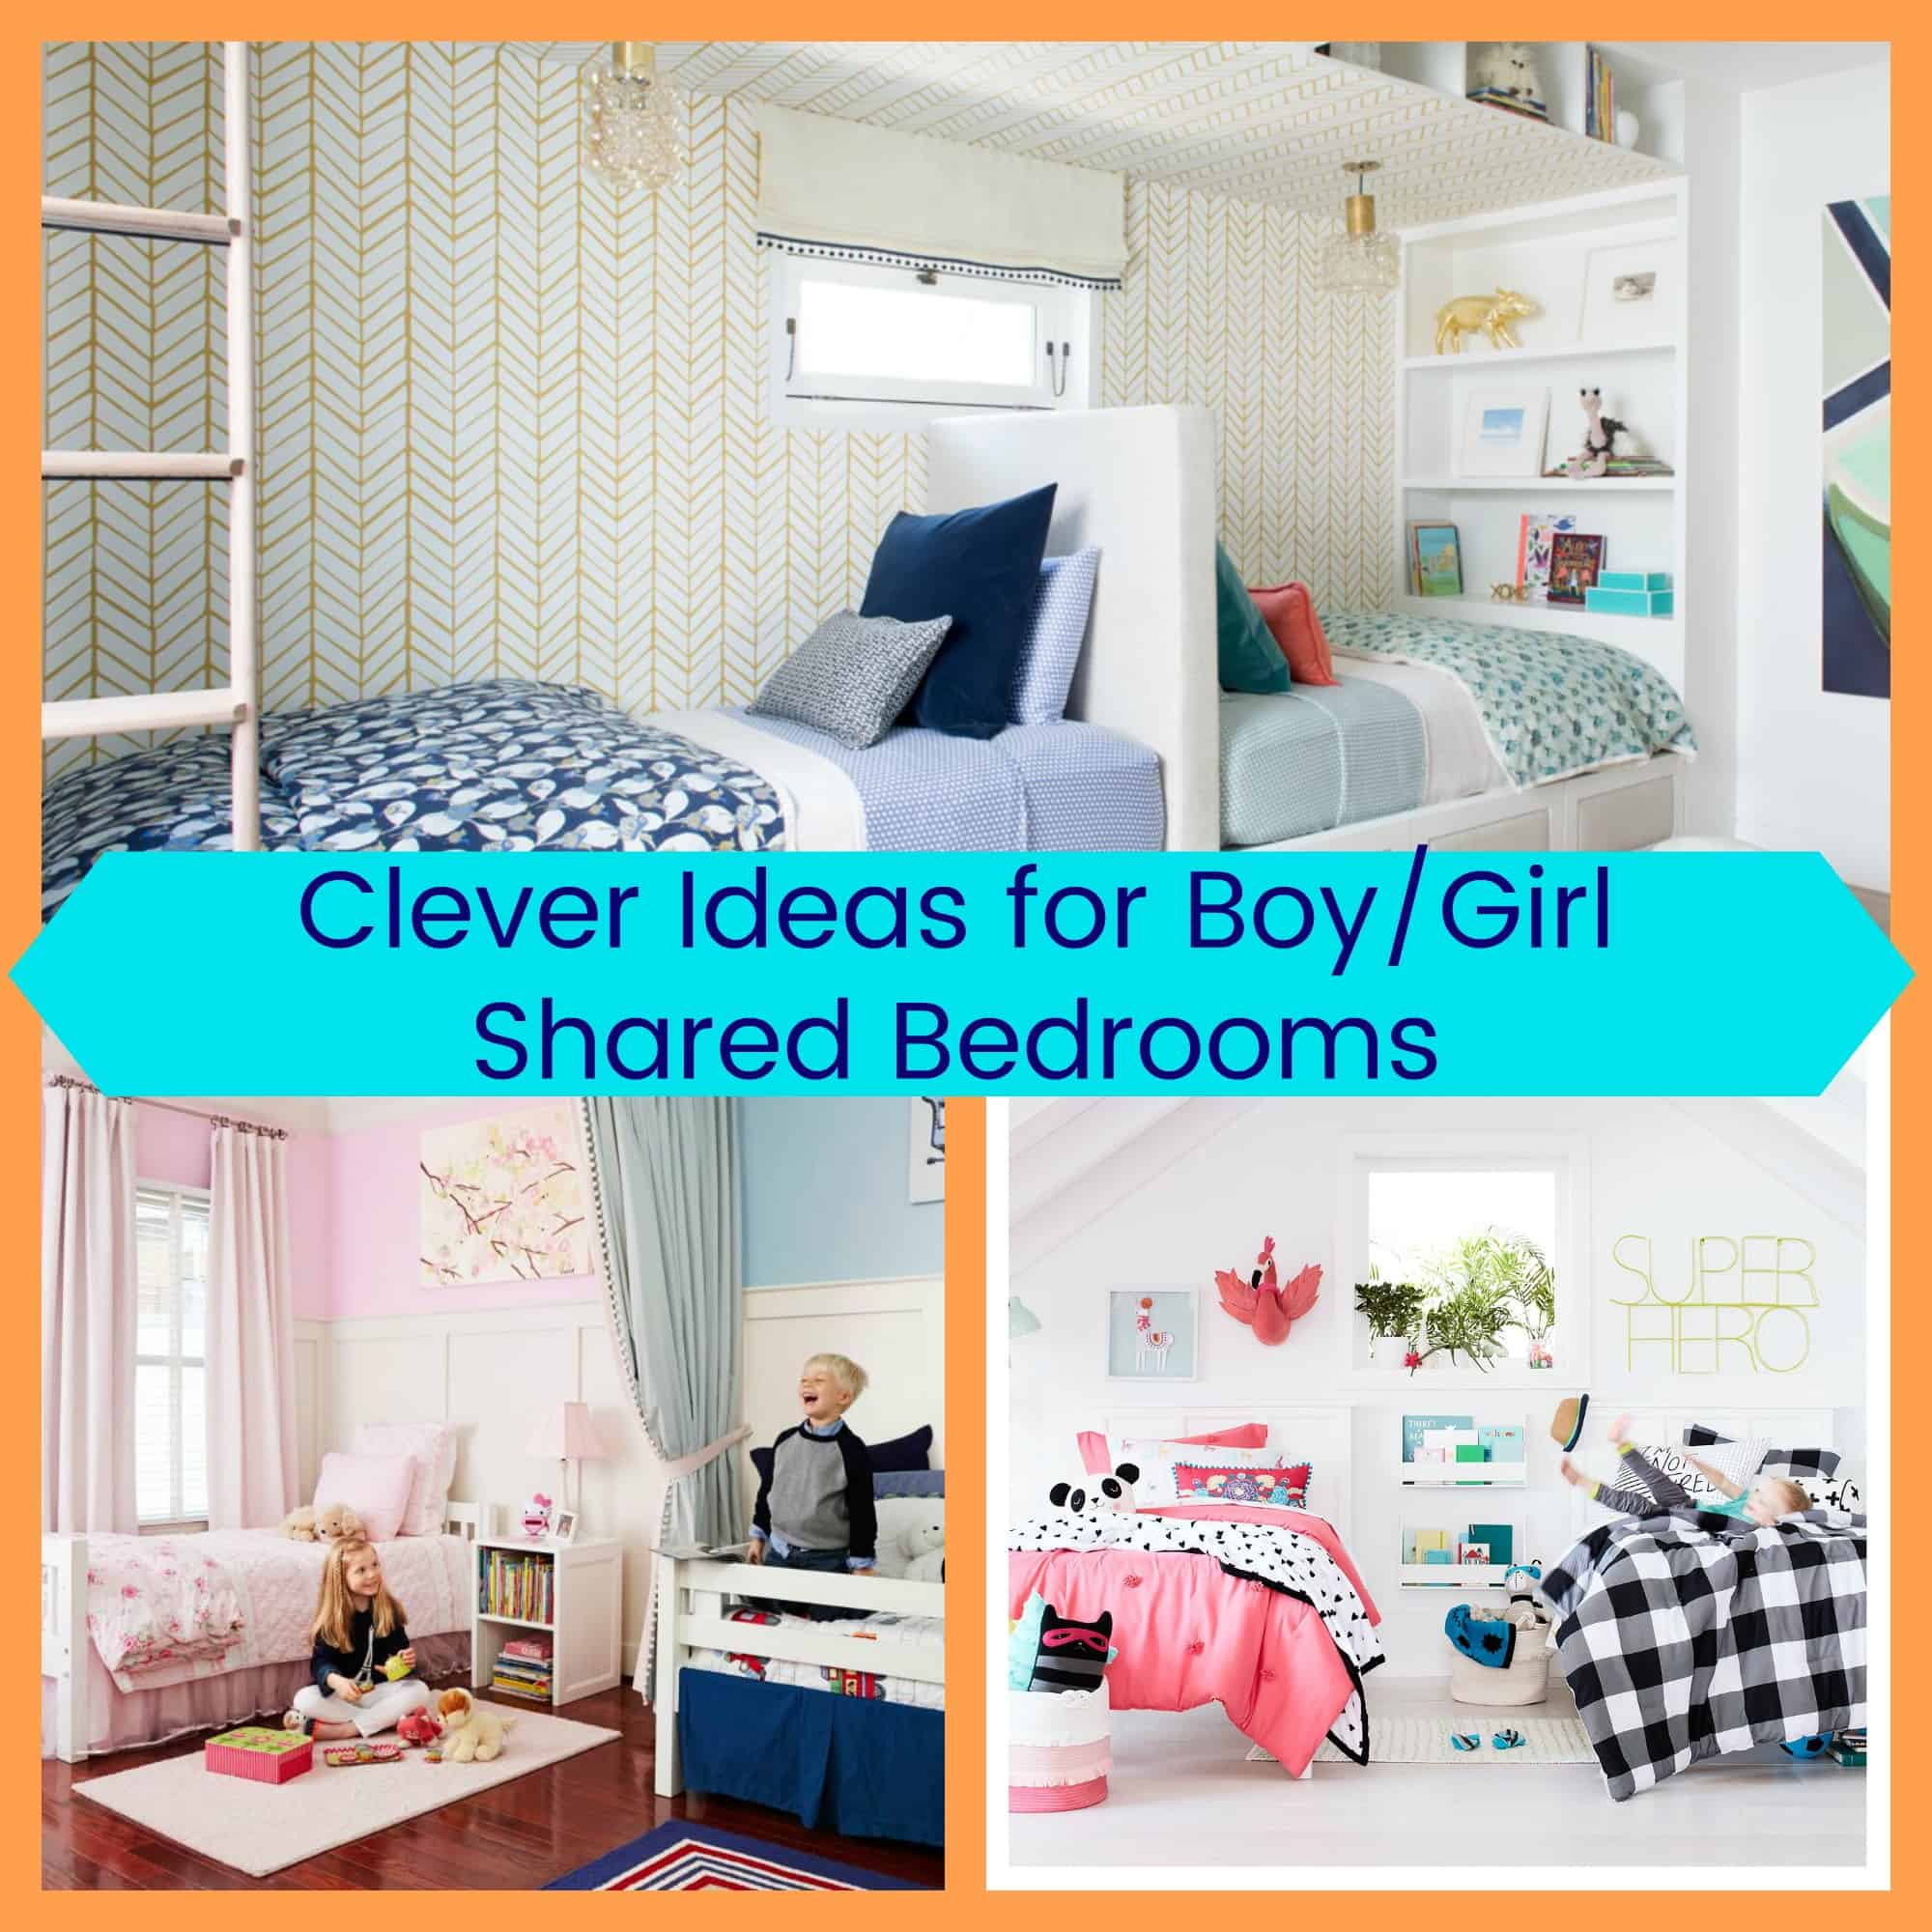 amazing Boy Girl Shared Room Ideas Part - 3: shared bedrooms